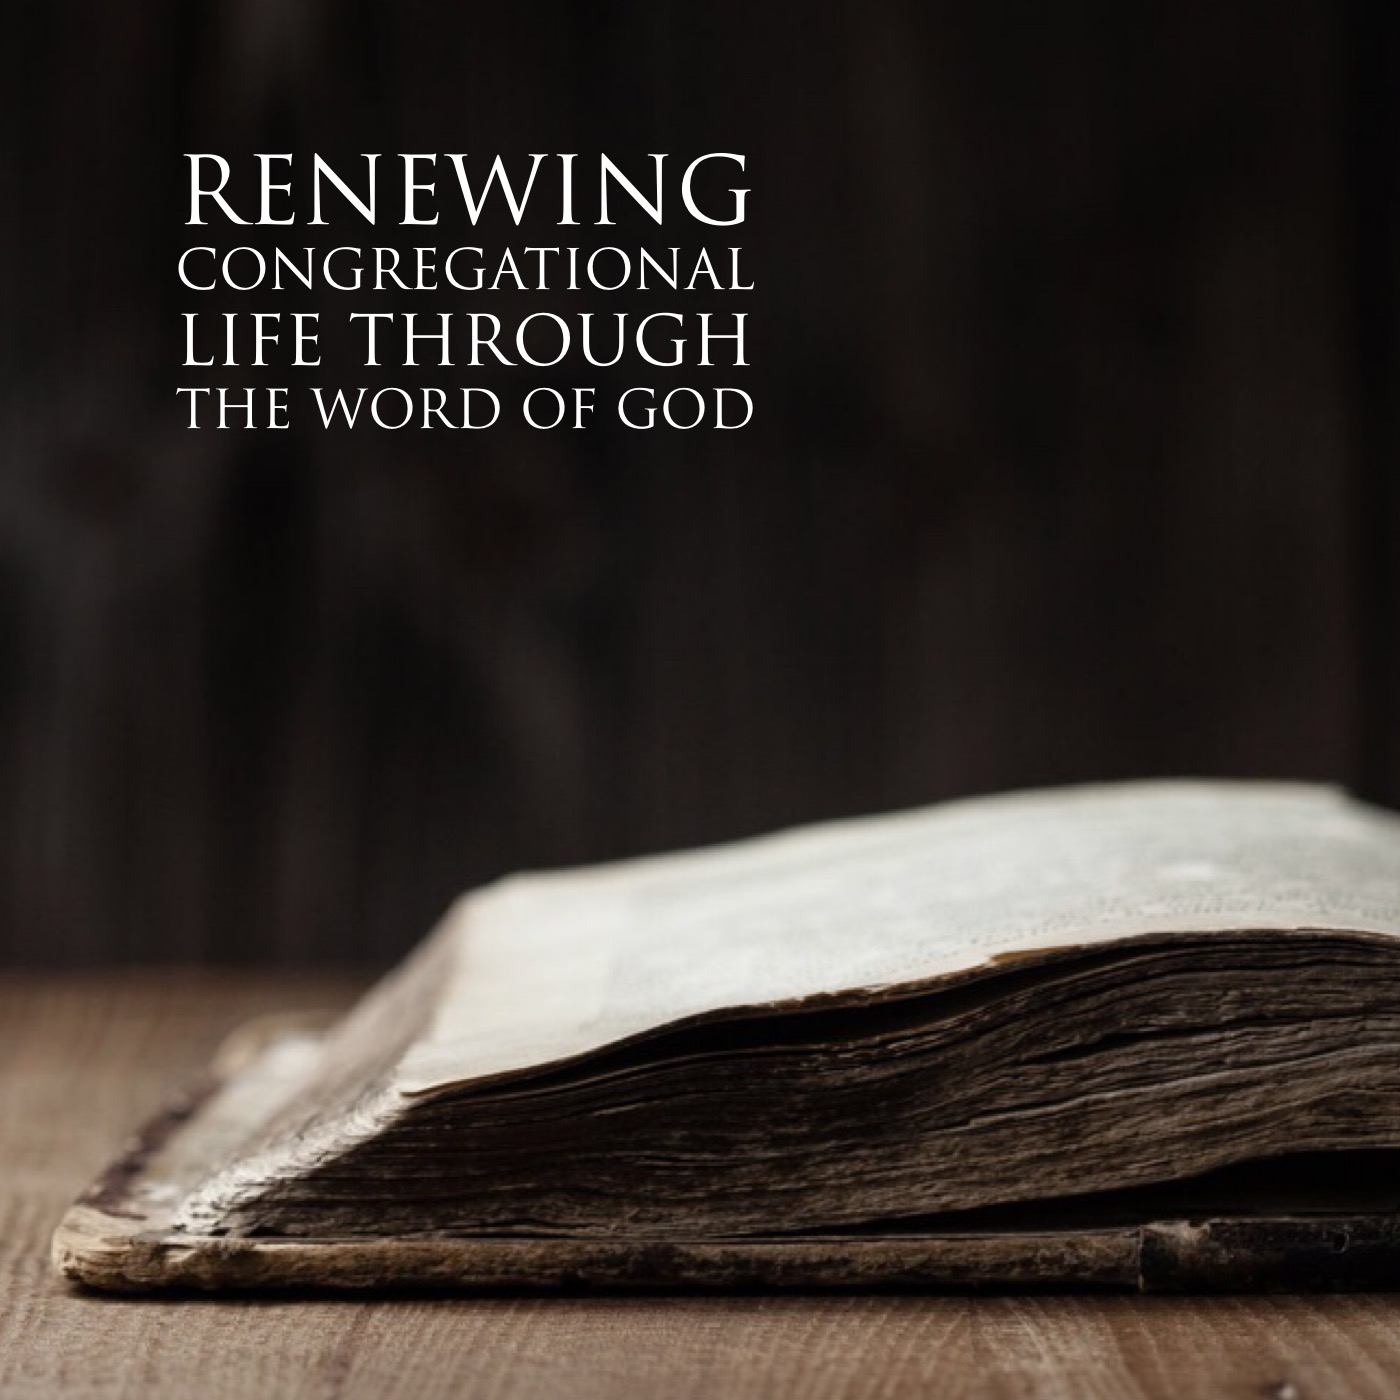 Renewing Congregational Life Through The Word of God